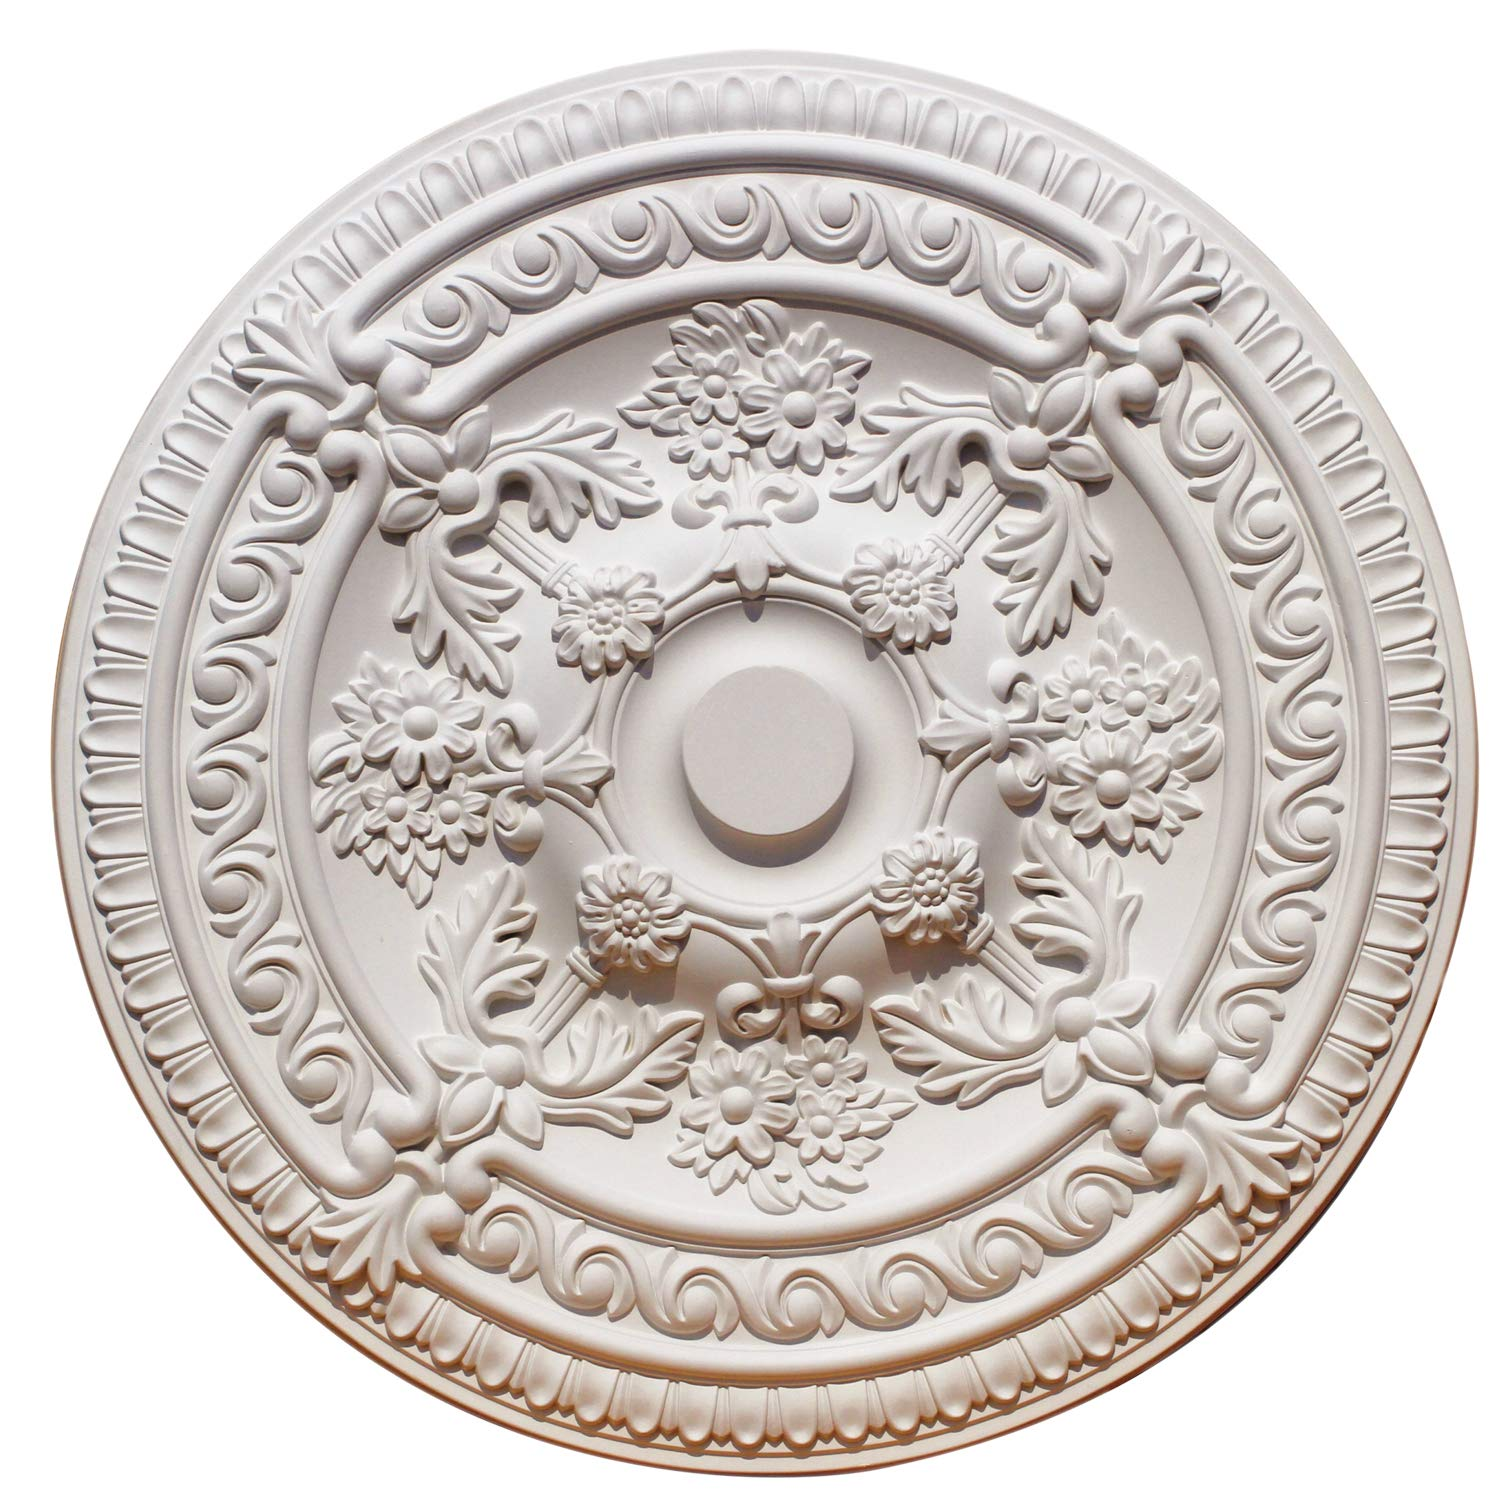 PU Moulding 100% Higher Density Polyethylene 26 inch Ceiling Medallions for Chandeliers Light Ceiling Medallion for Ceiling Fans 26'' OD x 5 1/2'' ID x 2 2/5'' P, White